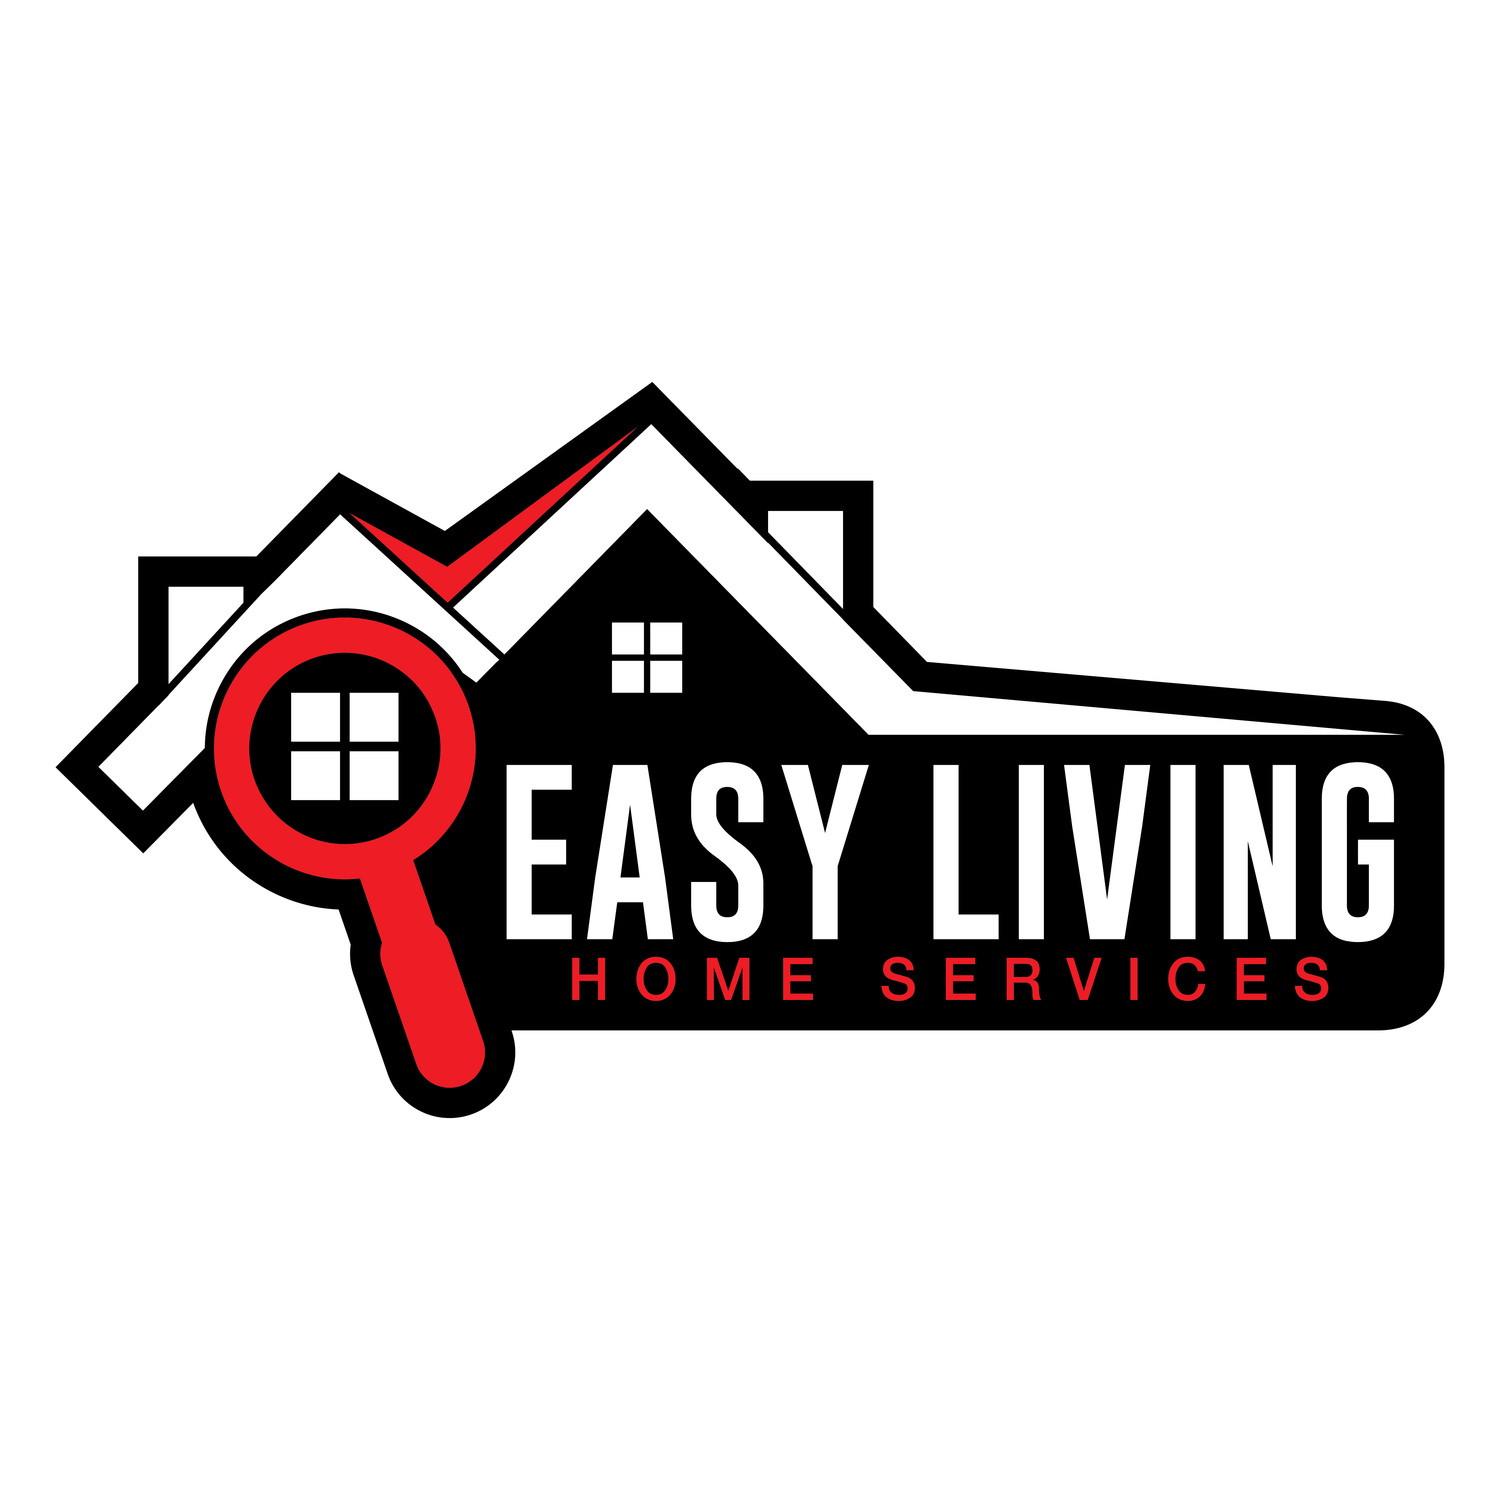 Easy living home services